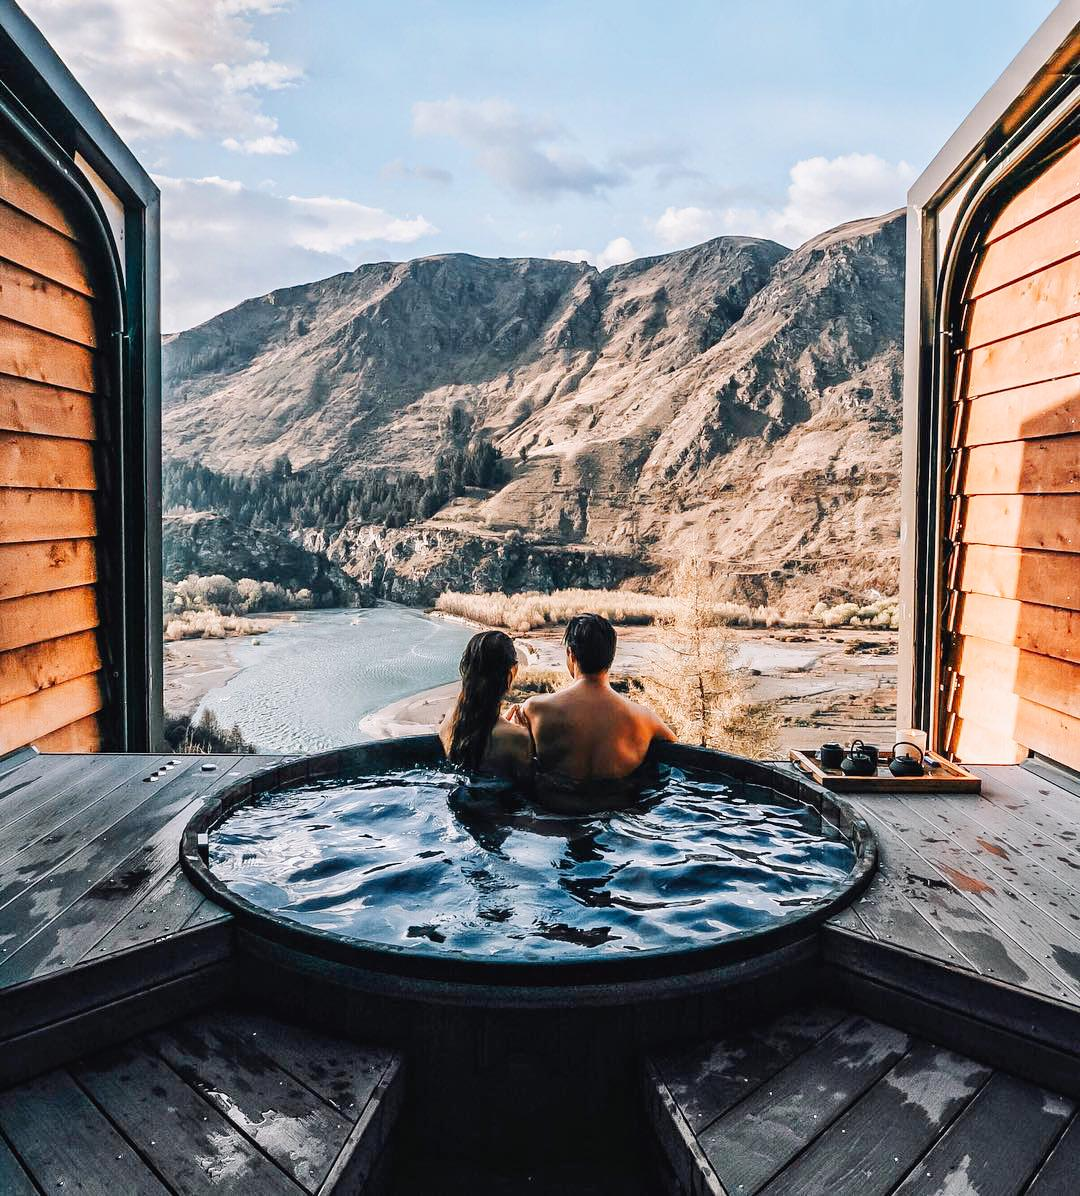 27 Outdoor Hot Springs Tubs Pools To Warm Up Your Winter Travels